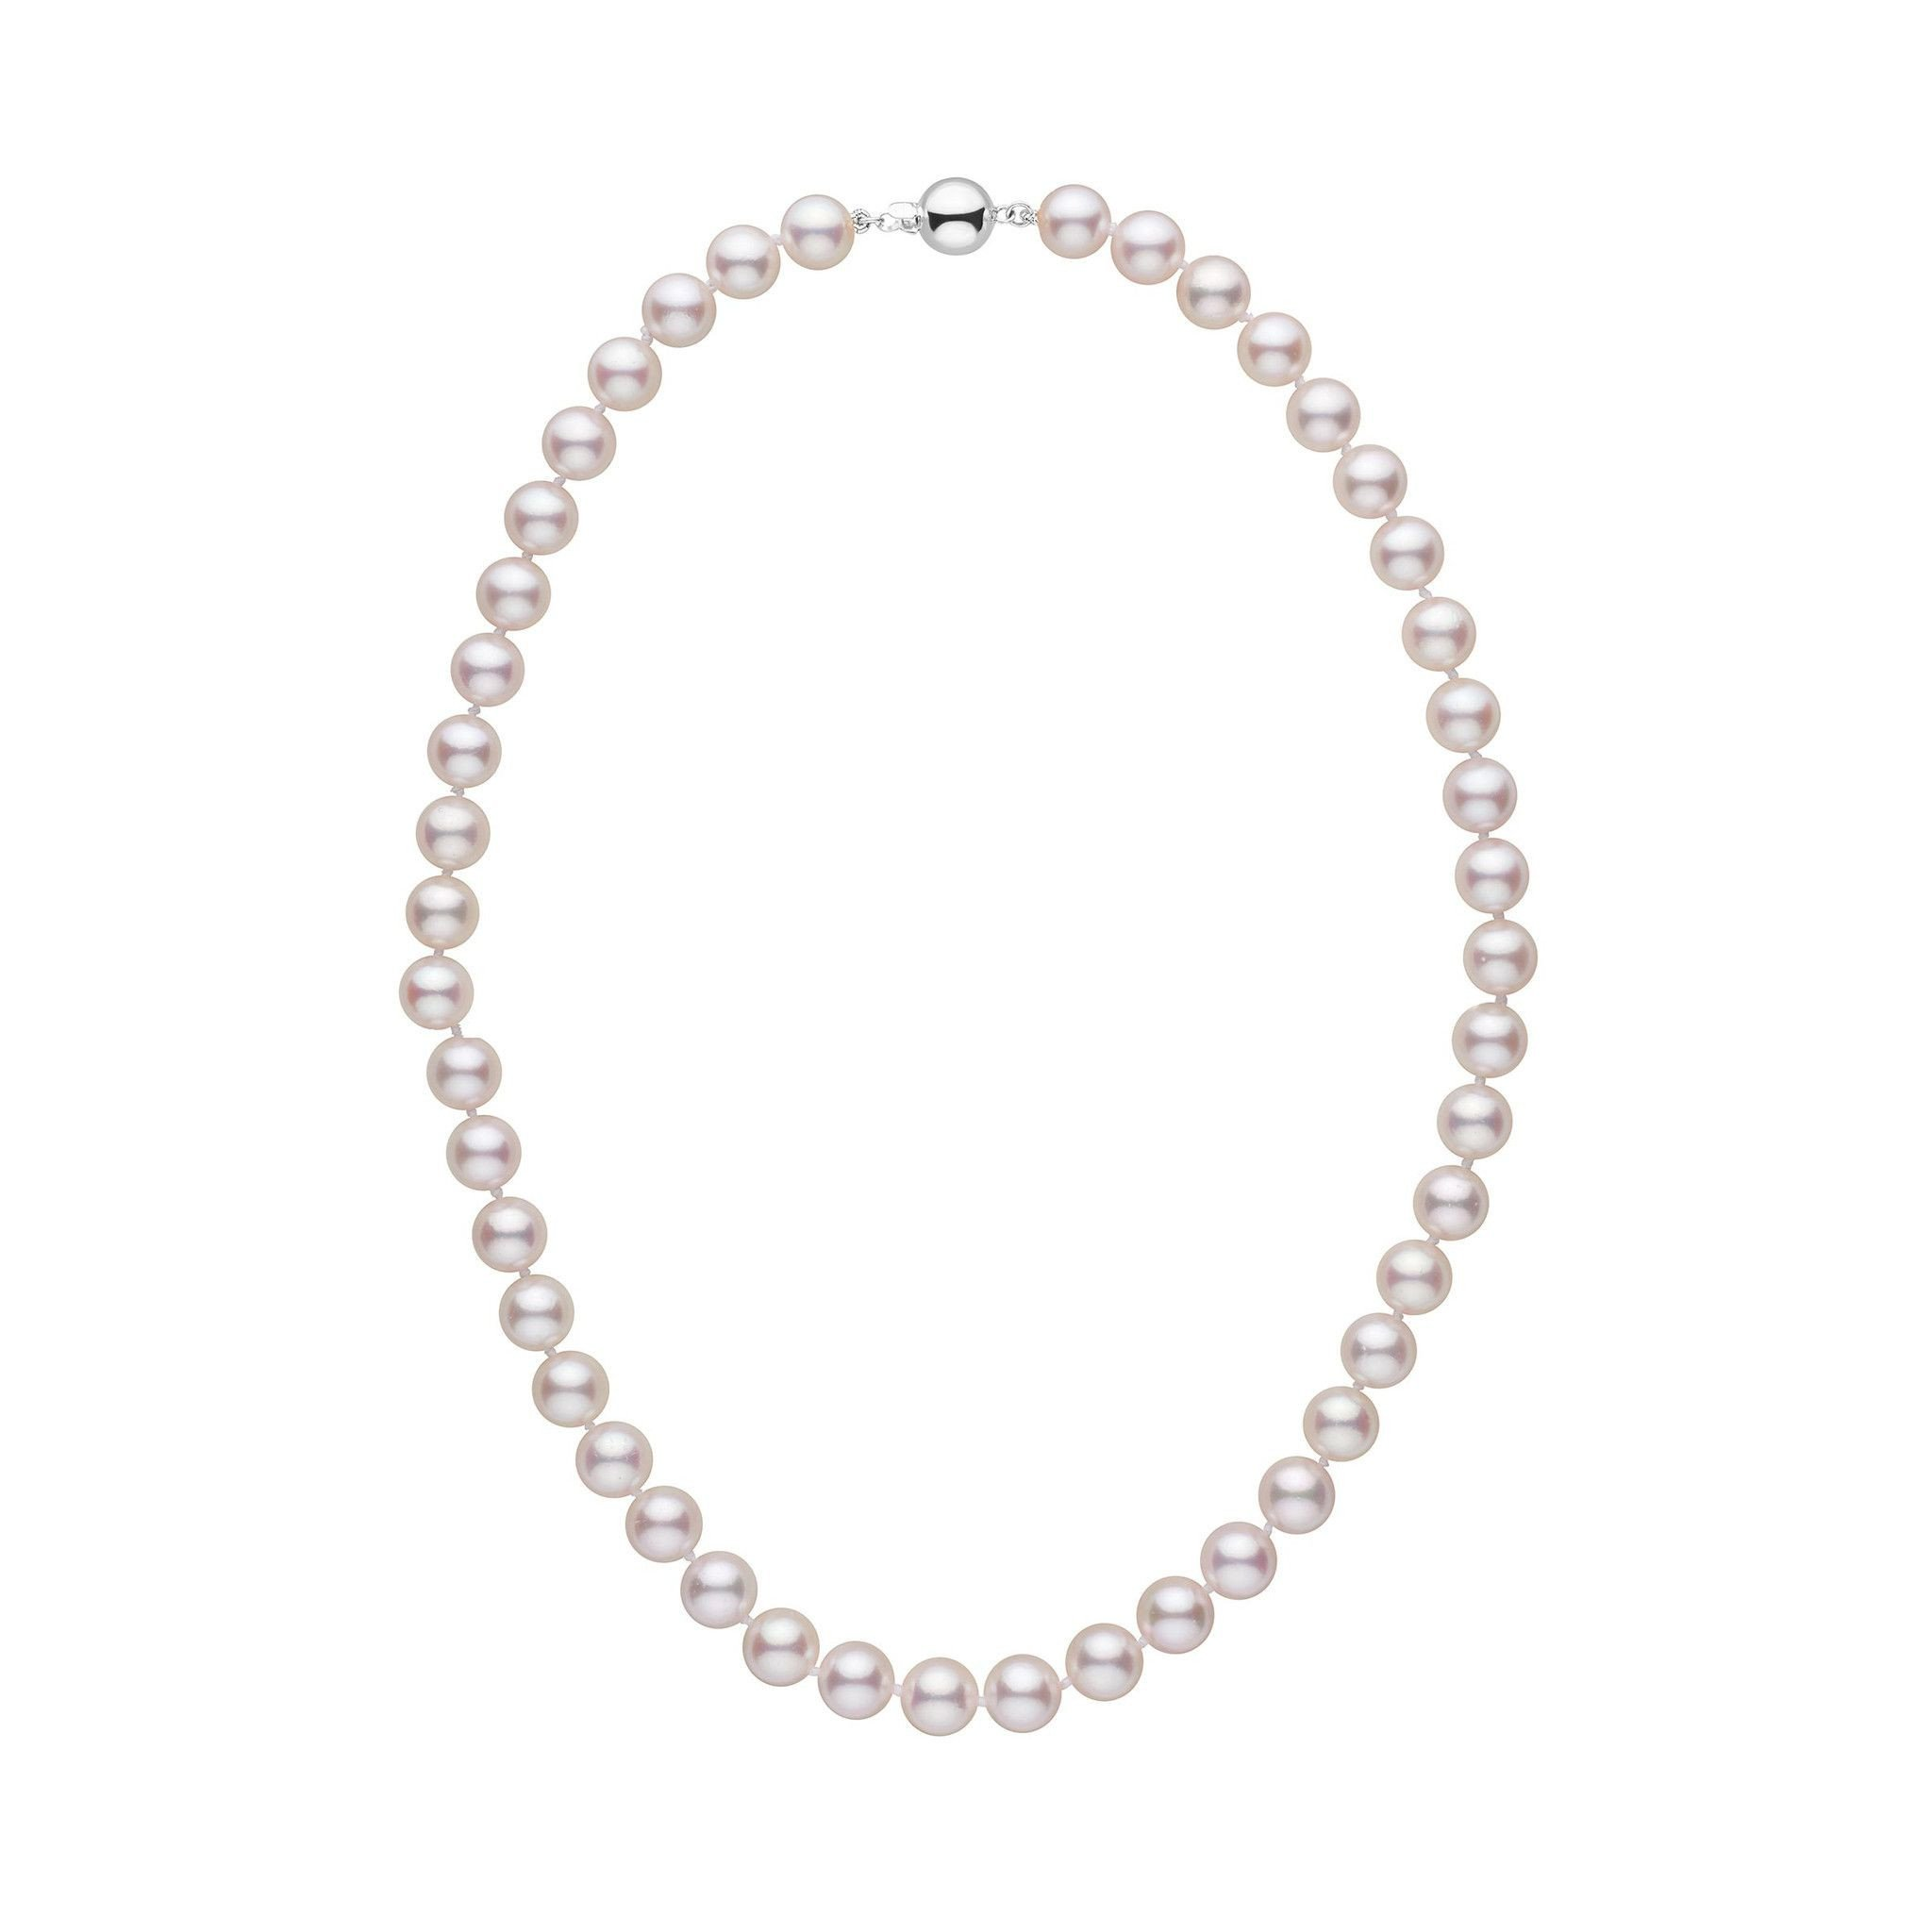 8.0-8.5 mm 18 inch AA+ White Akoya Pearl Necklace by Pearl Paradise